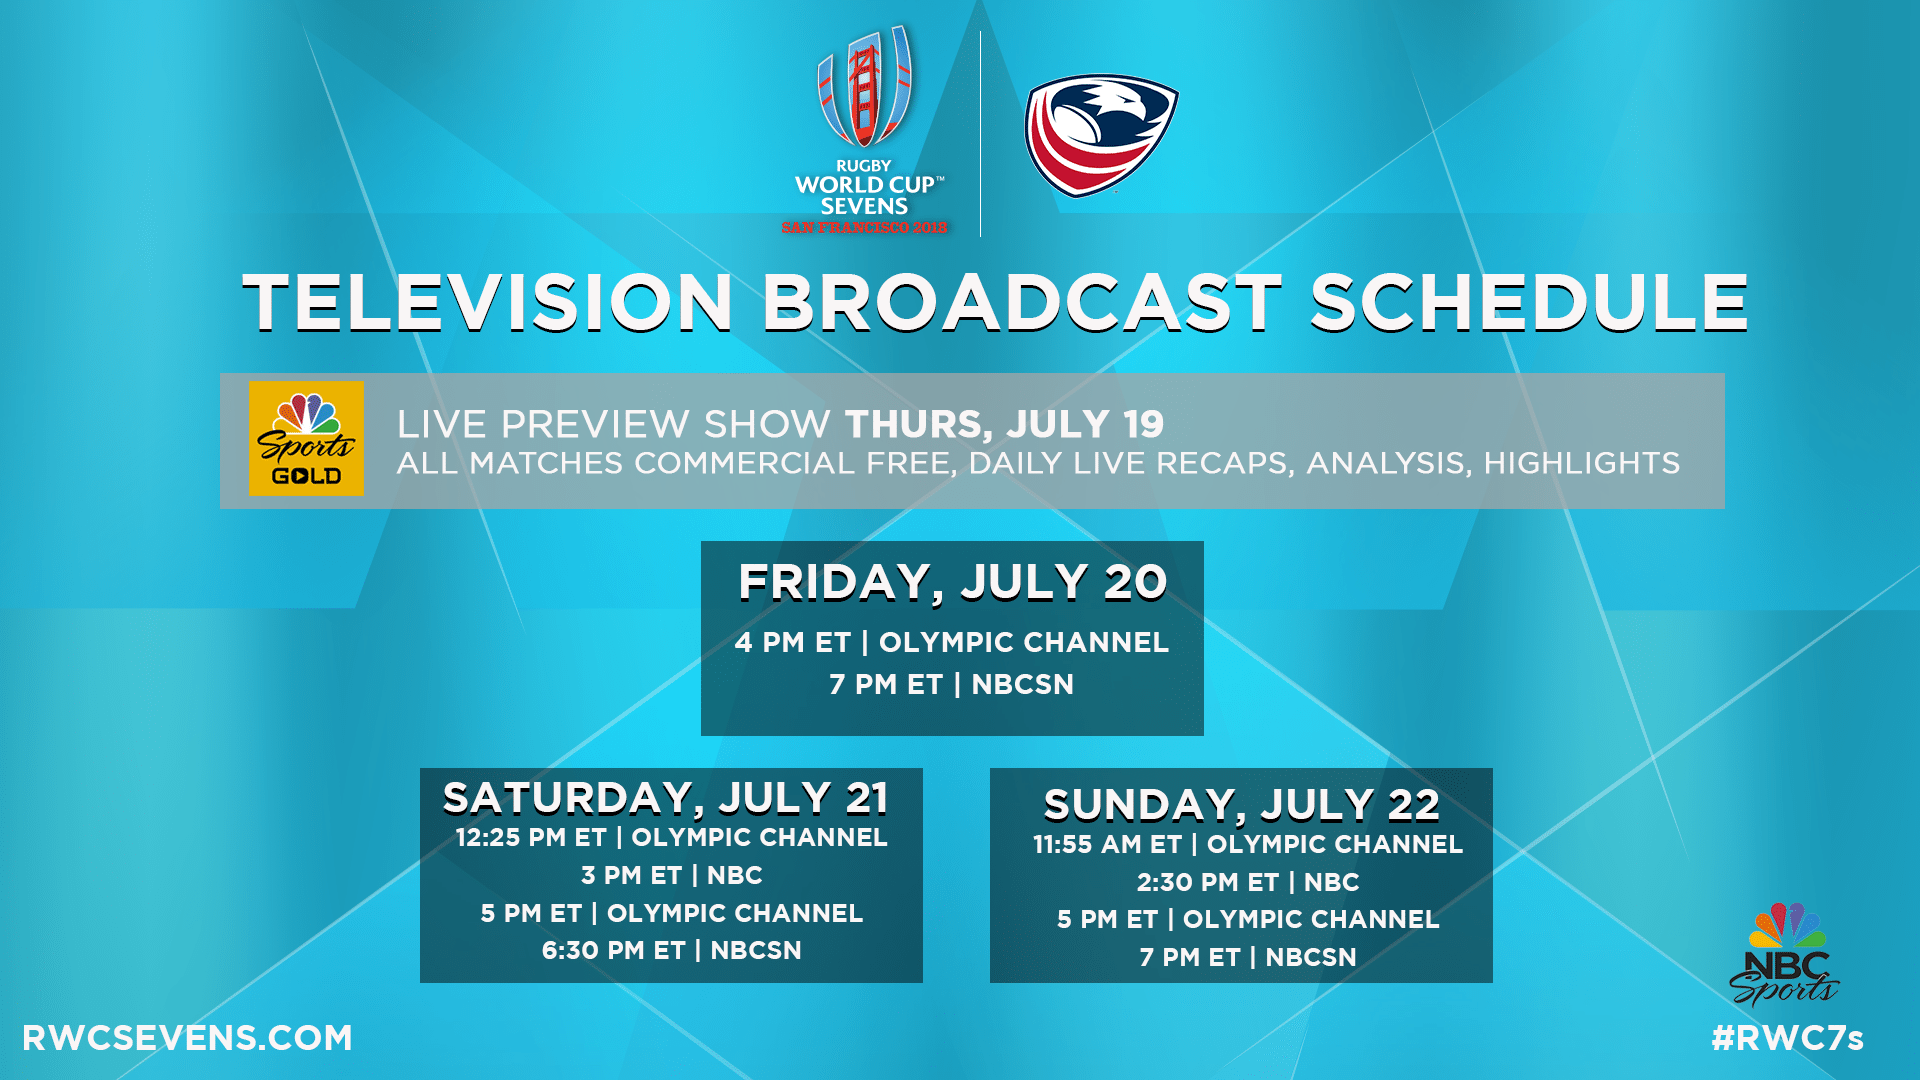 Nbc To Present Comprehensive Coverage Of 2018 Rugby World Cup Sevens In July Usa Rugby